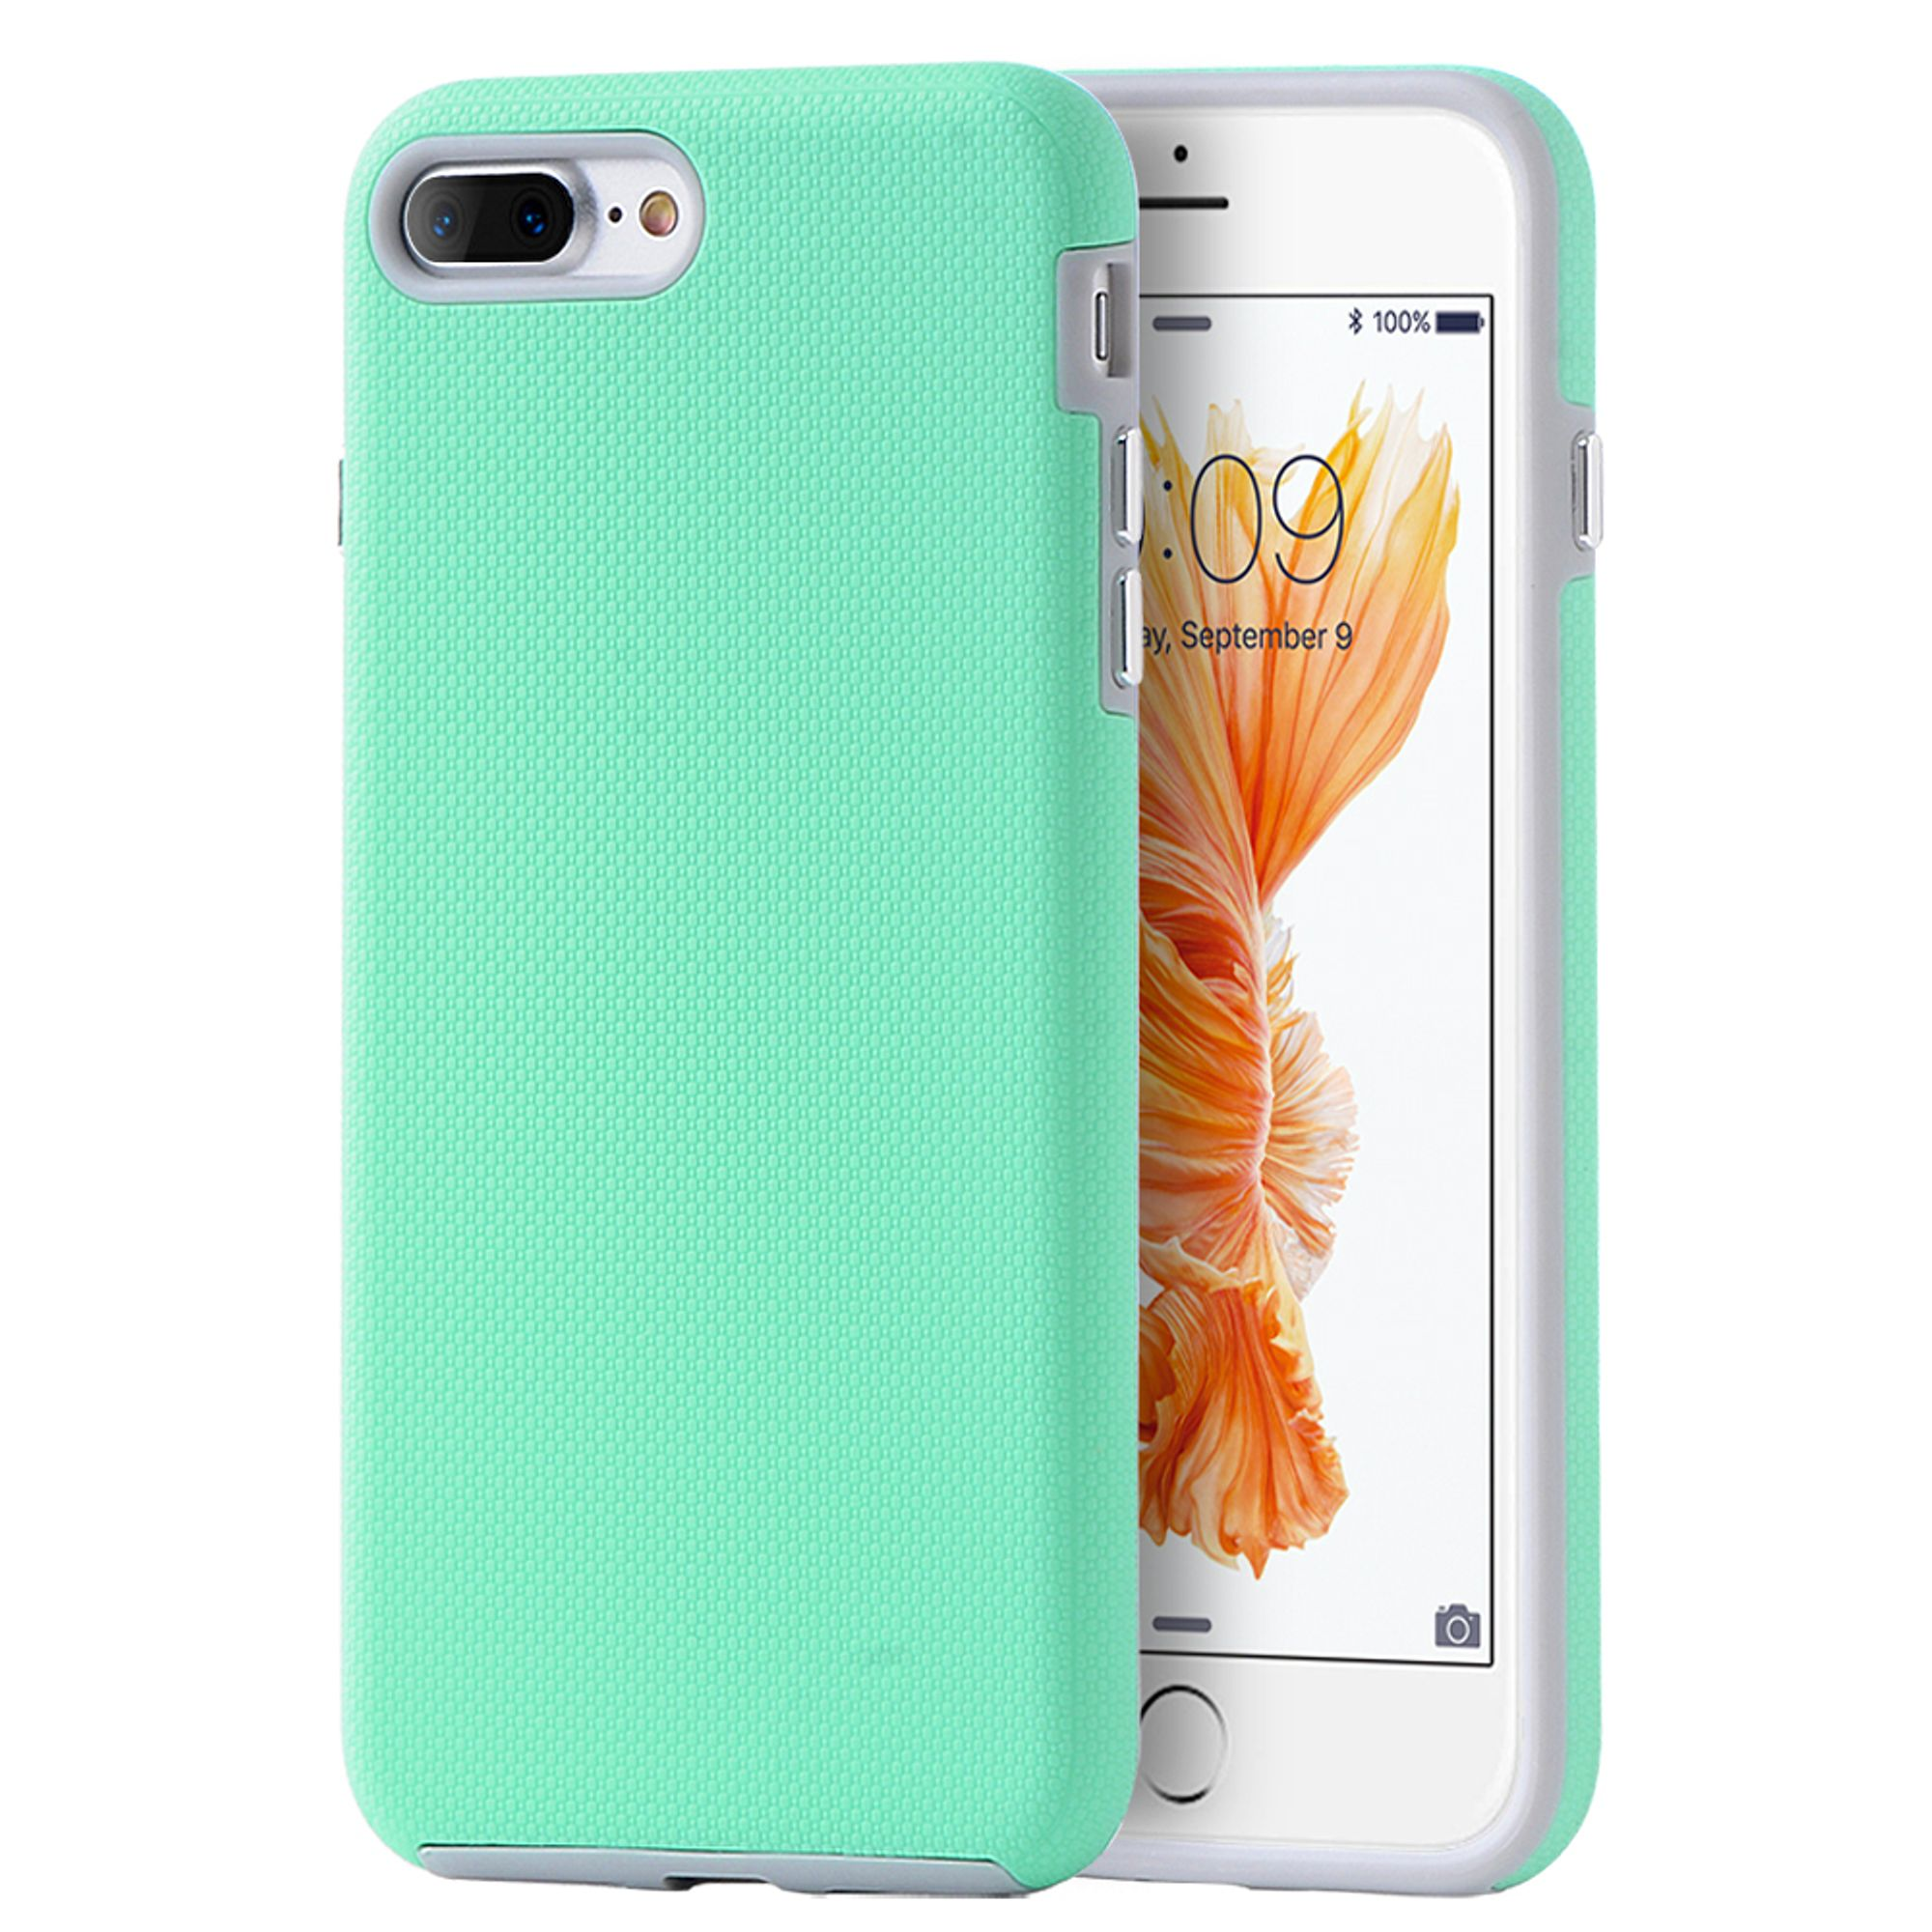 Insten Hard Dual Layer TPU Case for Apple iPhone 8 Plus / iPhone 7 Plus - Teal/Gray